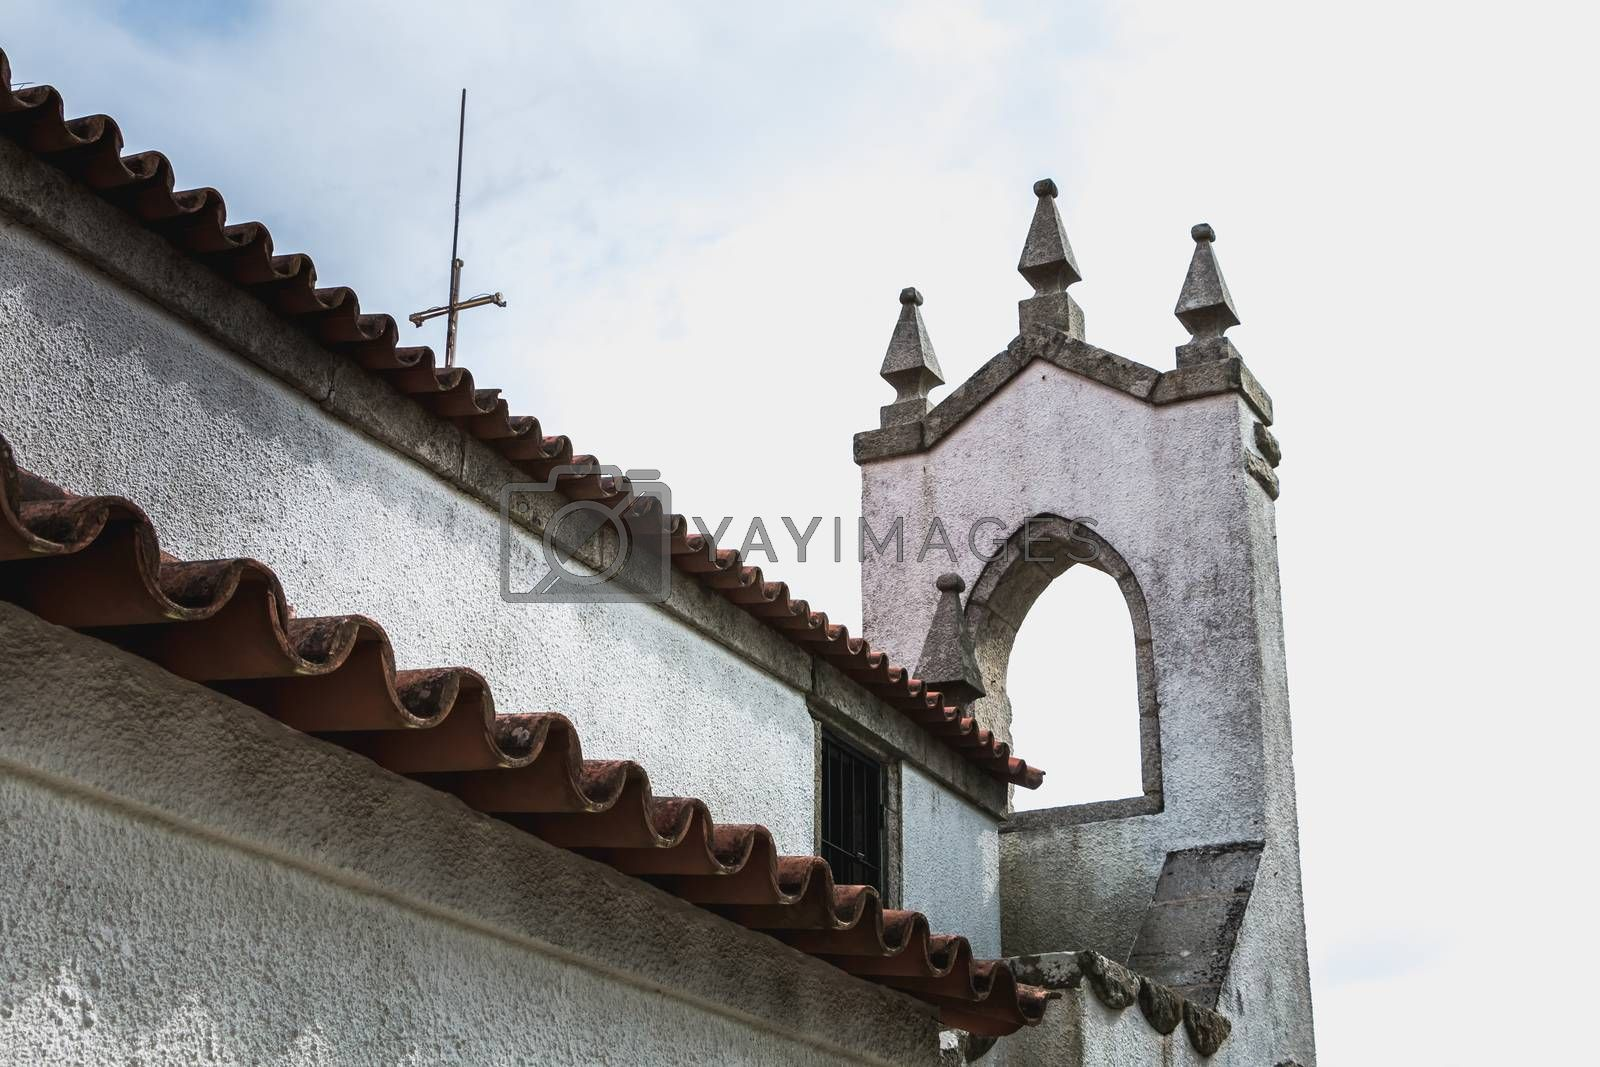 Architecture detail of the chapel of S. Lourenco near Esposende, Portugal on a spring day